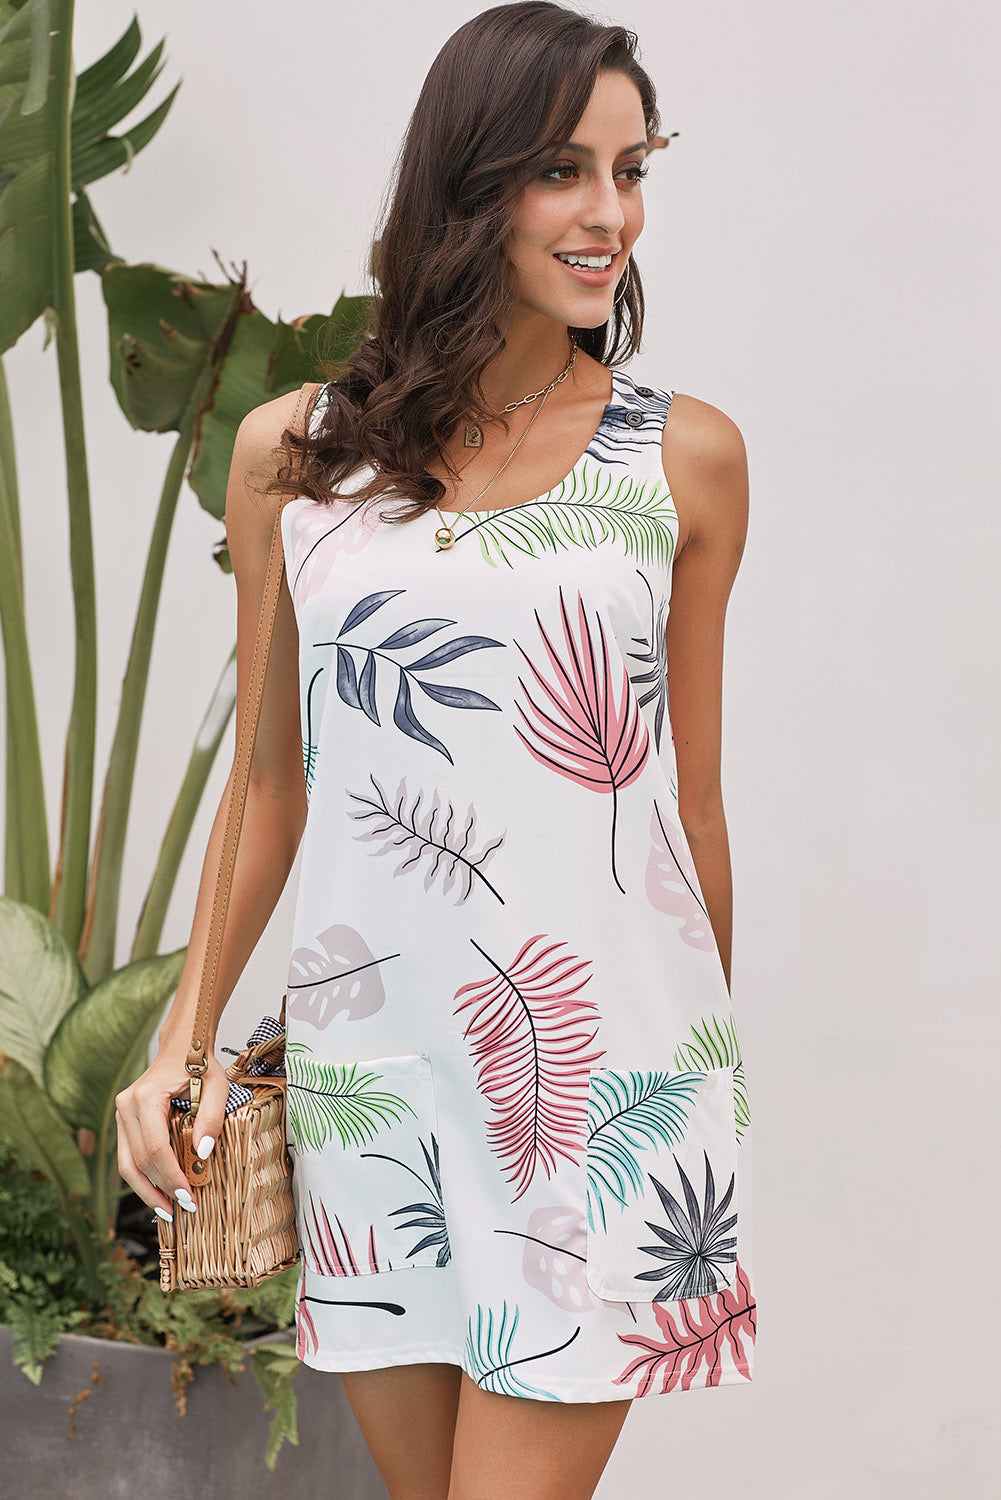 White Bohemian Printed Drawstring Sleeveless Dress